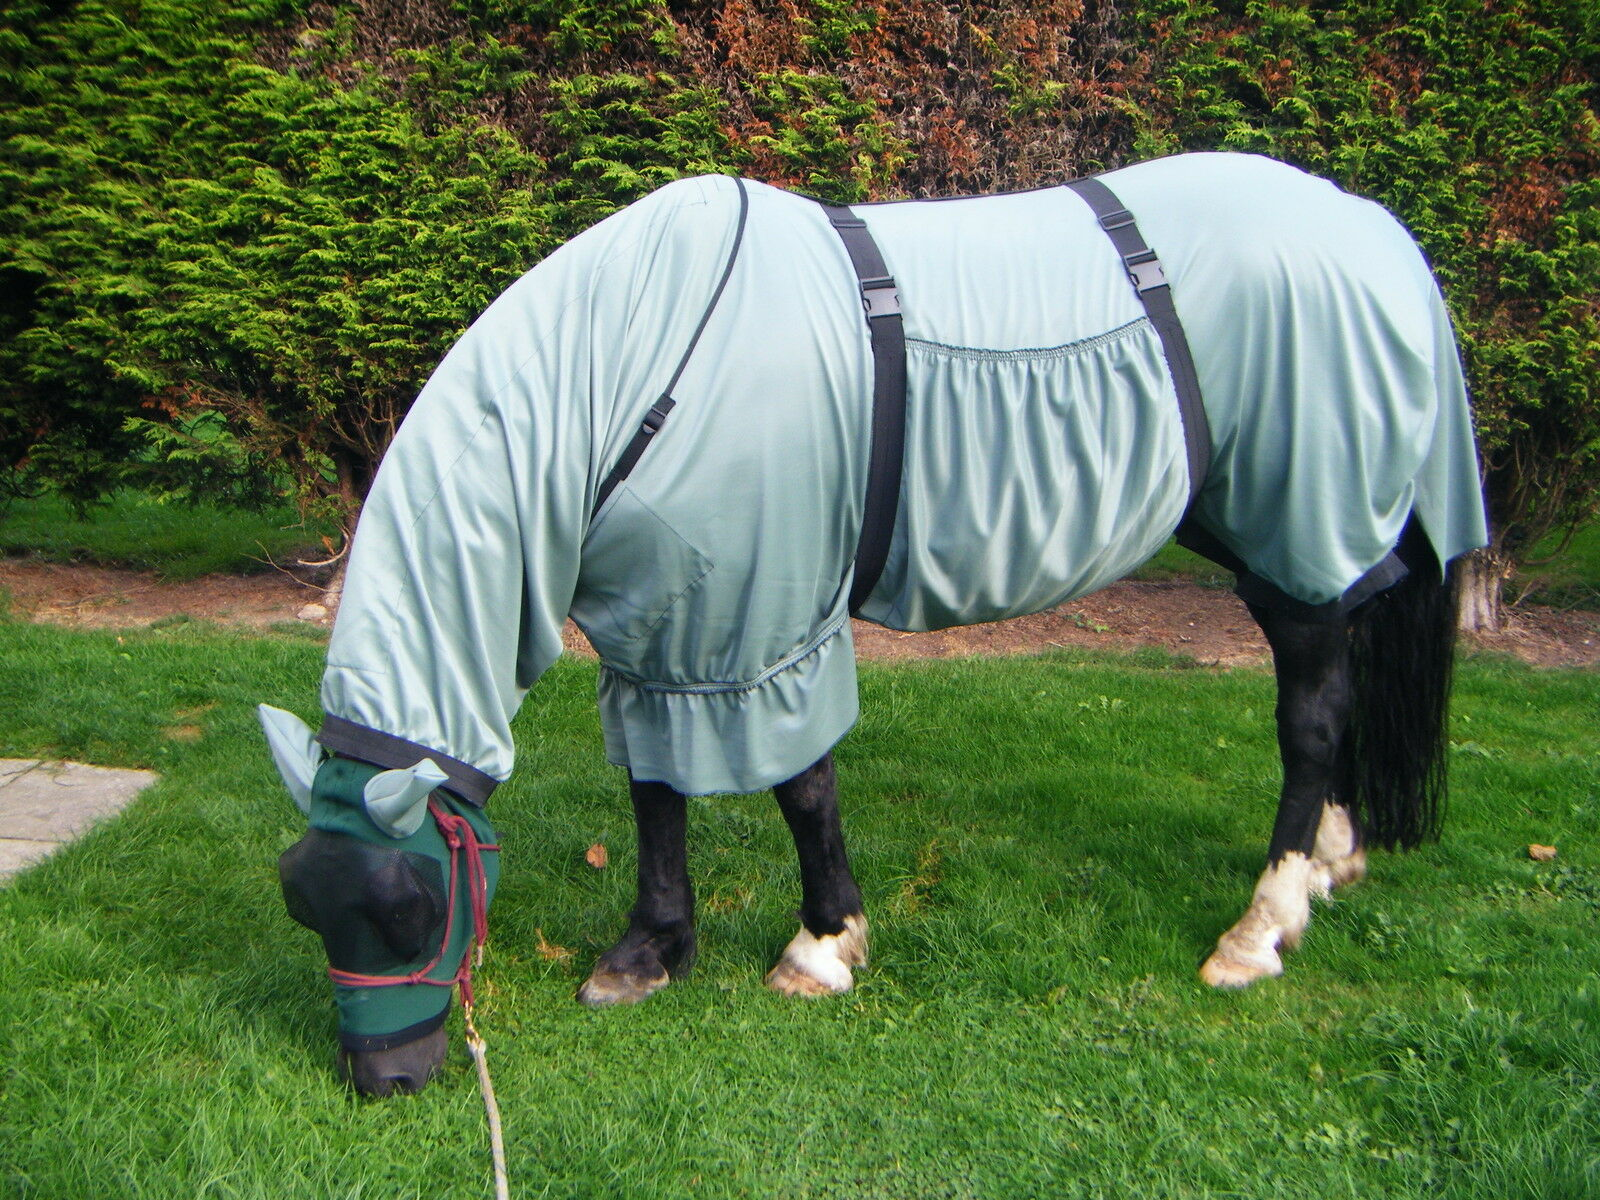 SWEET RUG ITCH RUG SWEET - MADE TO MEASURE - 10HH- 16HH sweetitch 32cb90